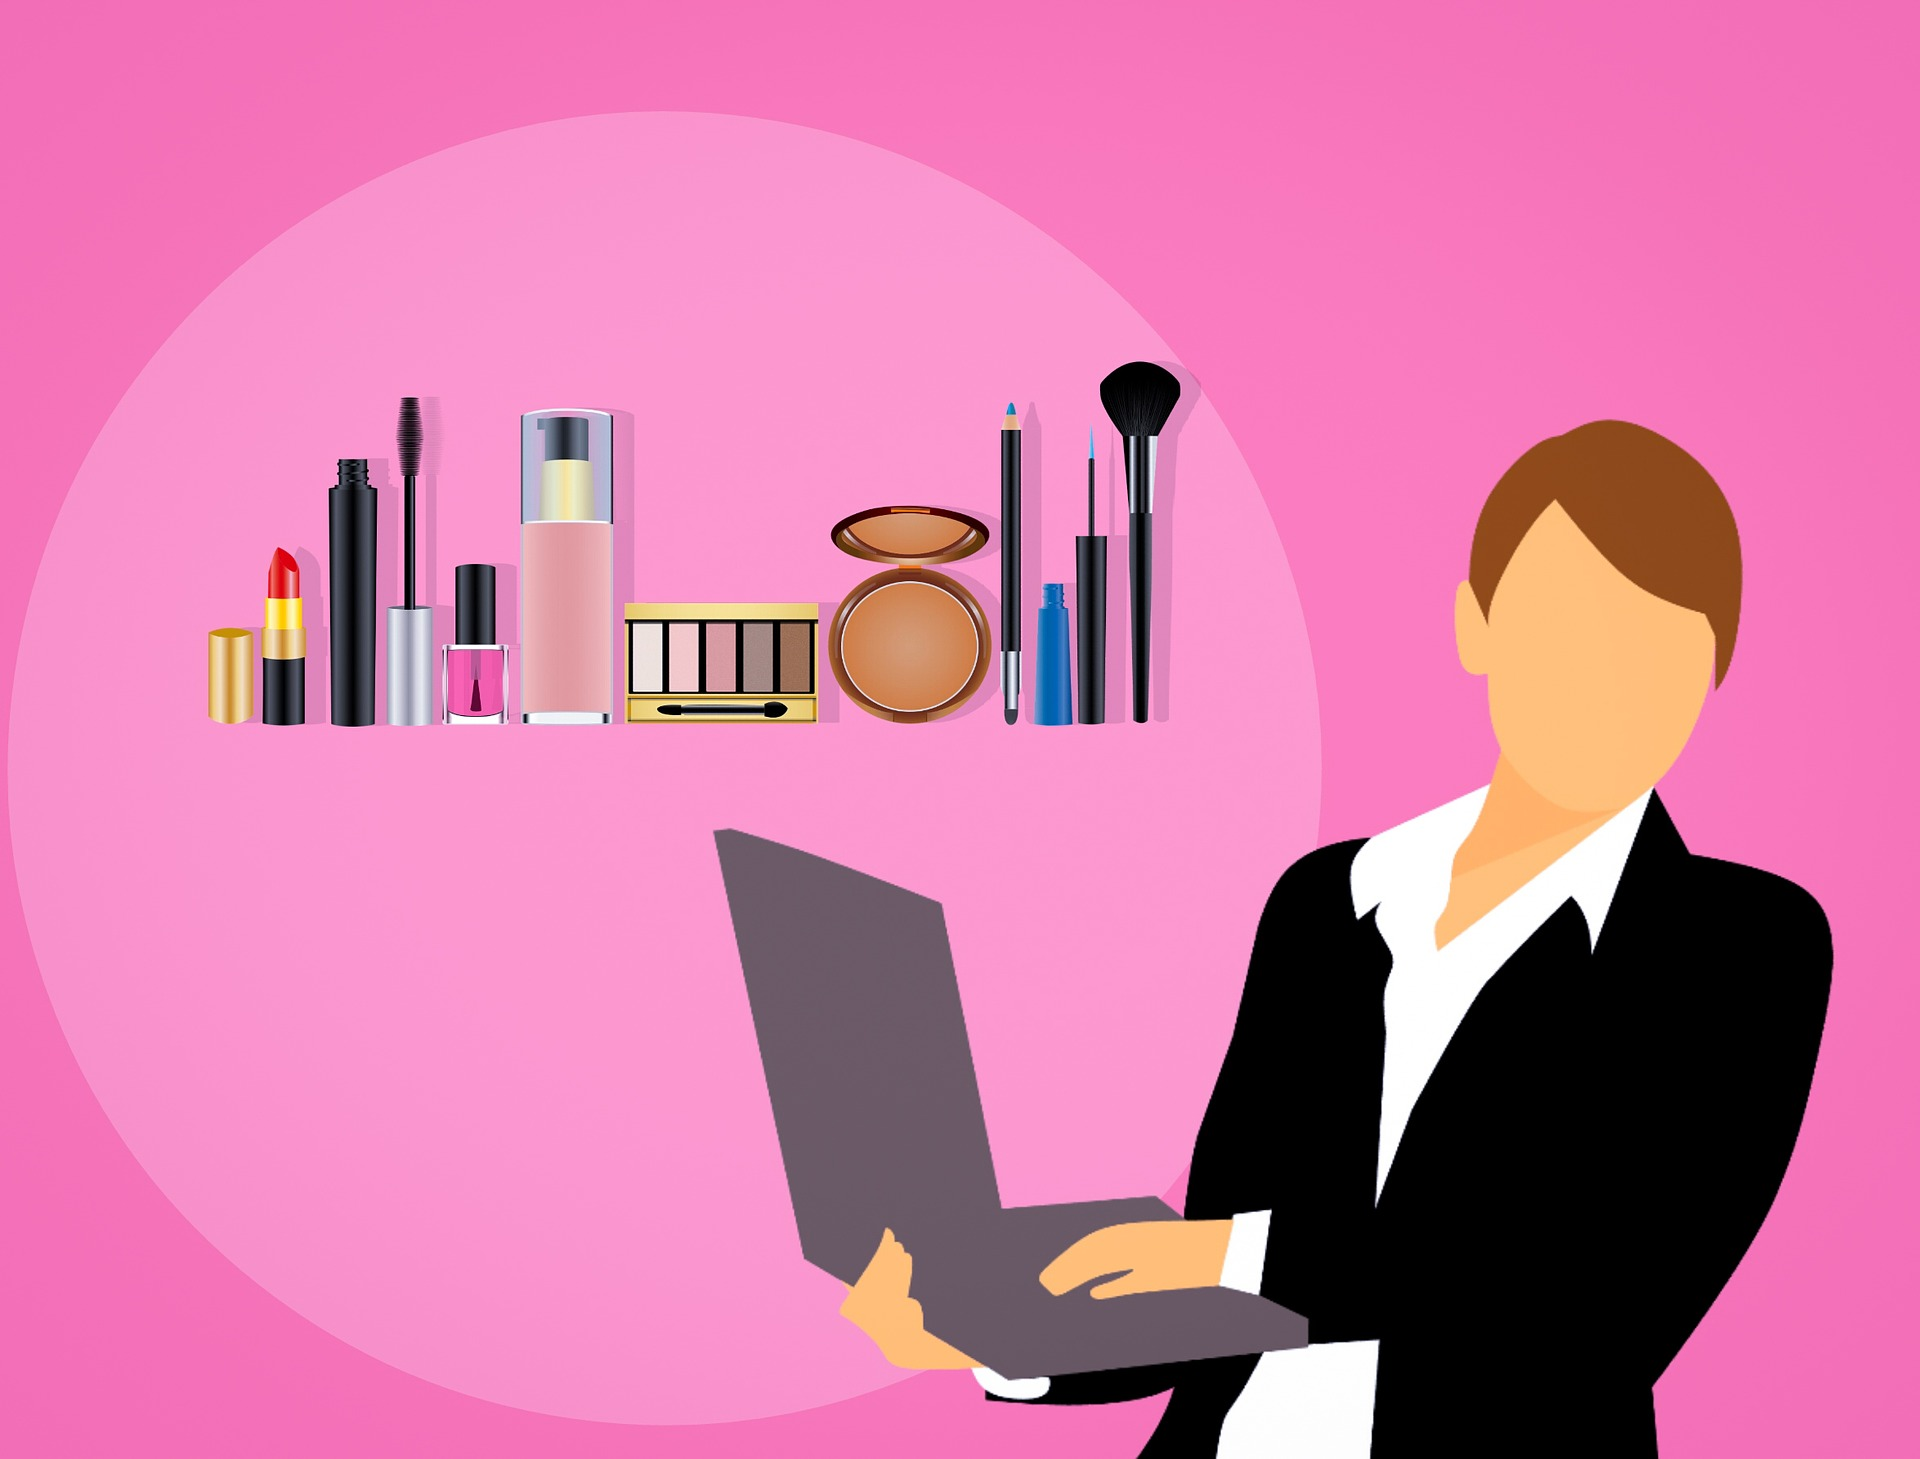 Zoom beauty essential:The Essential Beauty Items to Use on the Daily for Zoom Calls